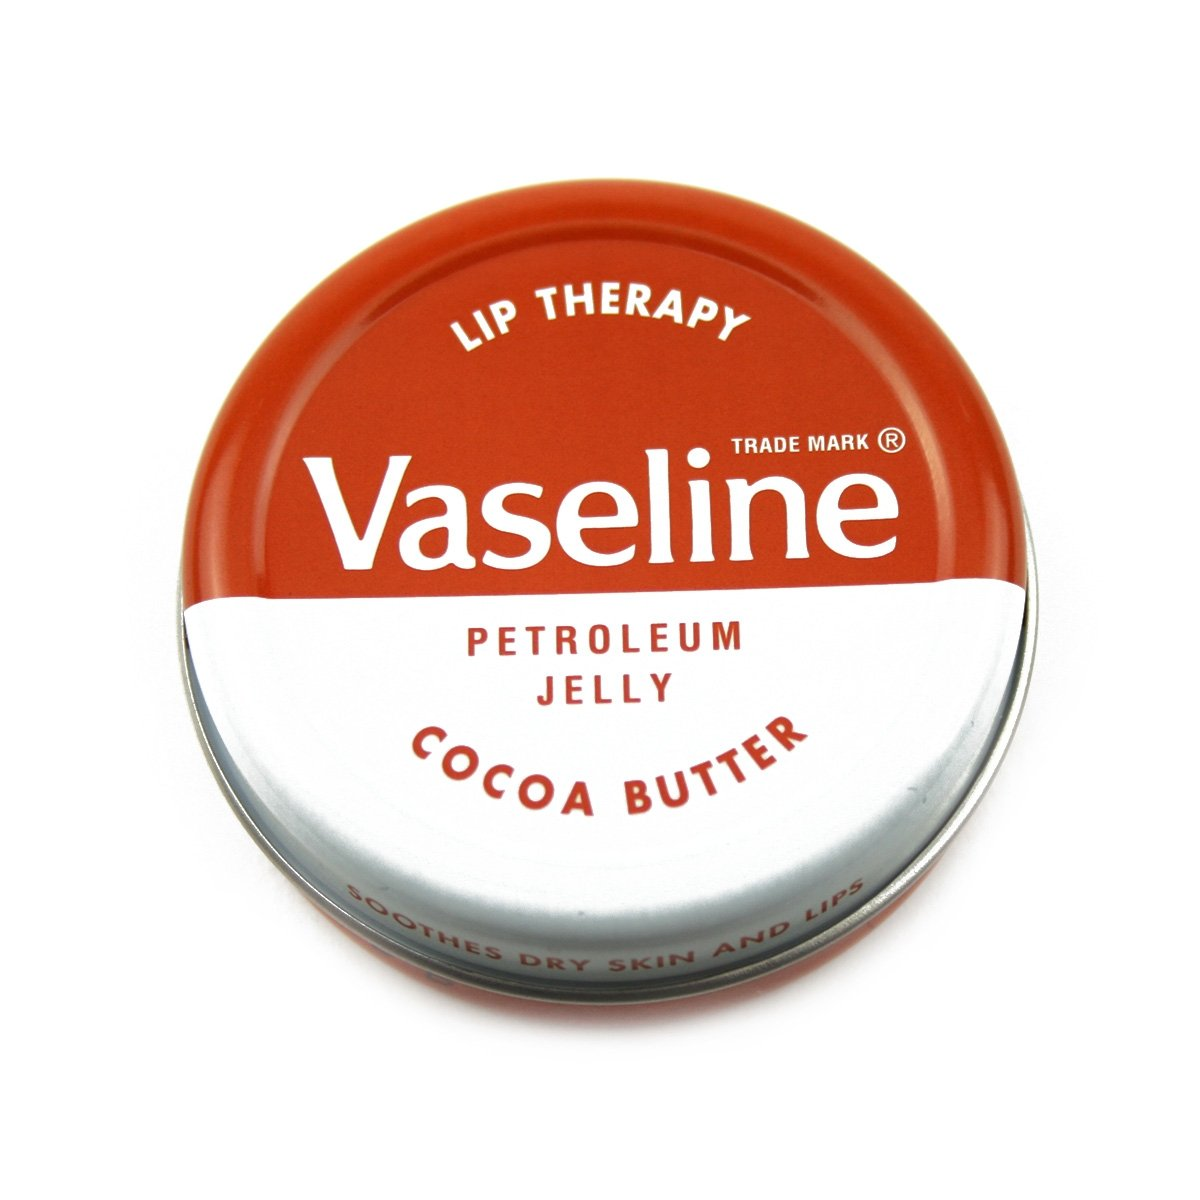 Vaseline Lip Therapy With Cocoa Butter Petroleum Jelly 20g 014006